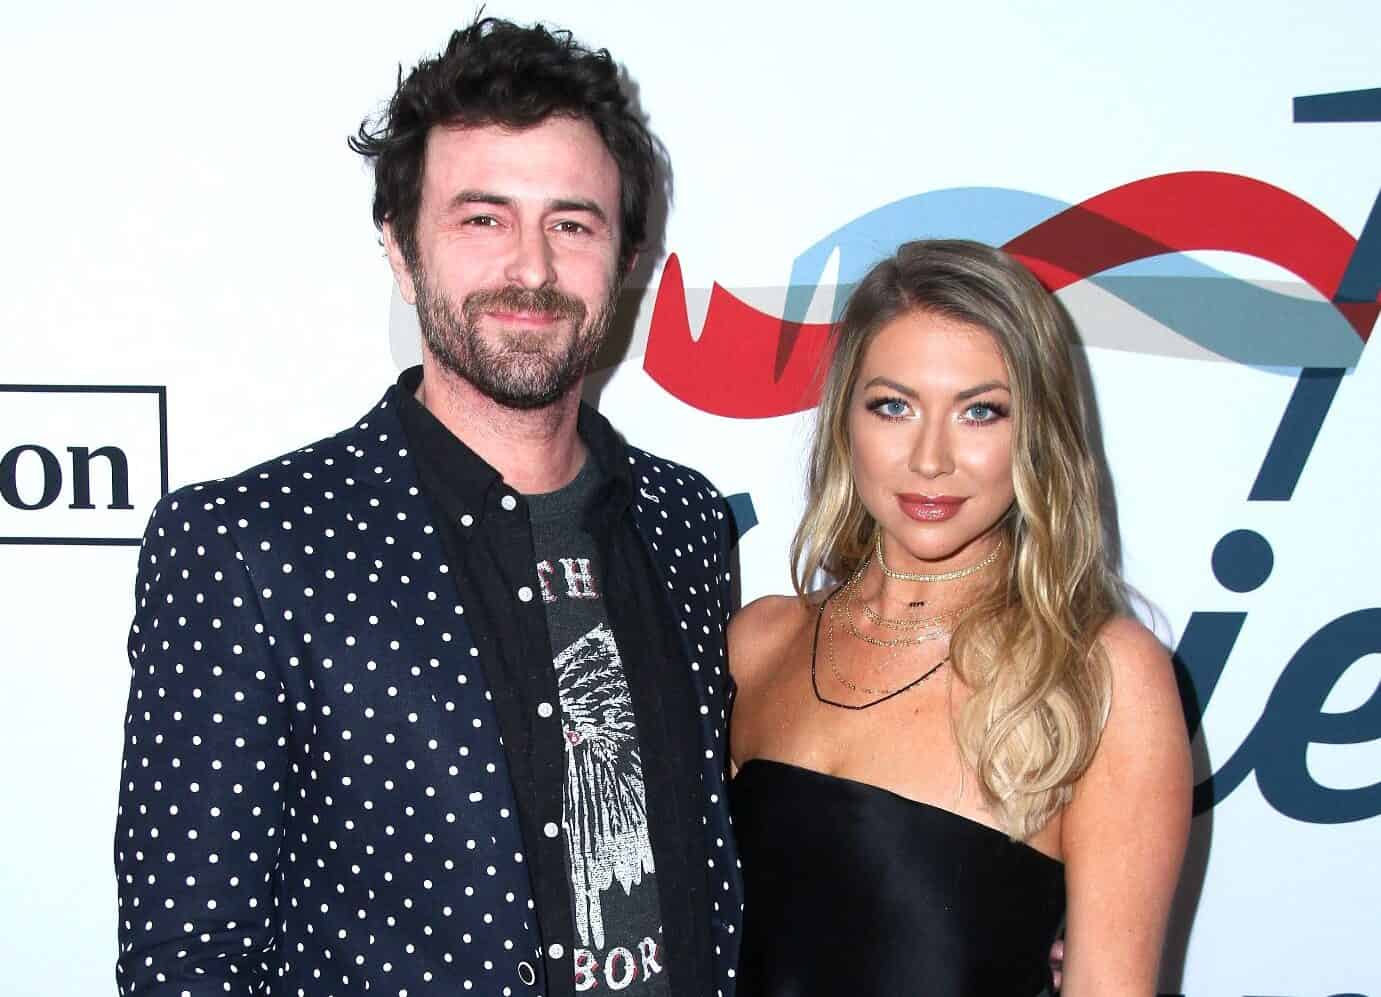 """PHOTOS: Go Inside the Nursery of Stassi Schroeder's Baby Girl as Ex Vanderpump Rules Star's Fiance Beau Clark Jokes That Her Crib """"Looks Like a Prison,"""" Plus See the Latest Pics of Her Baby Bump"""